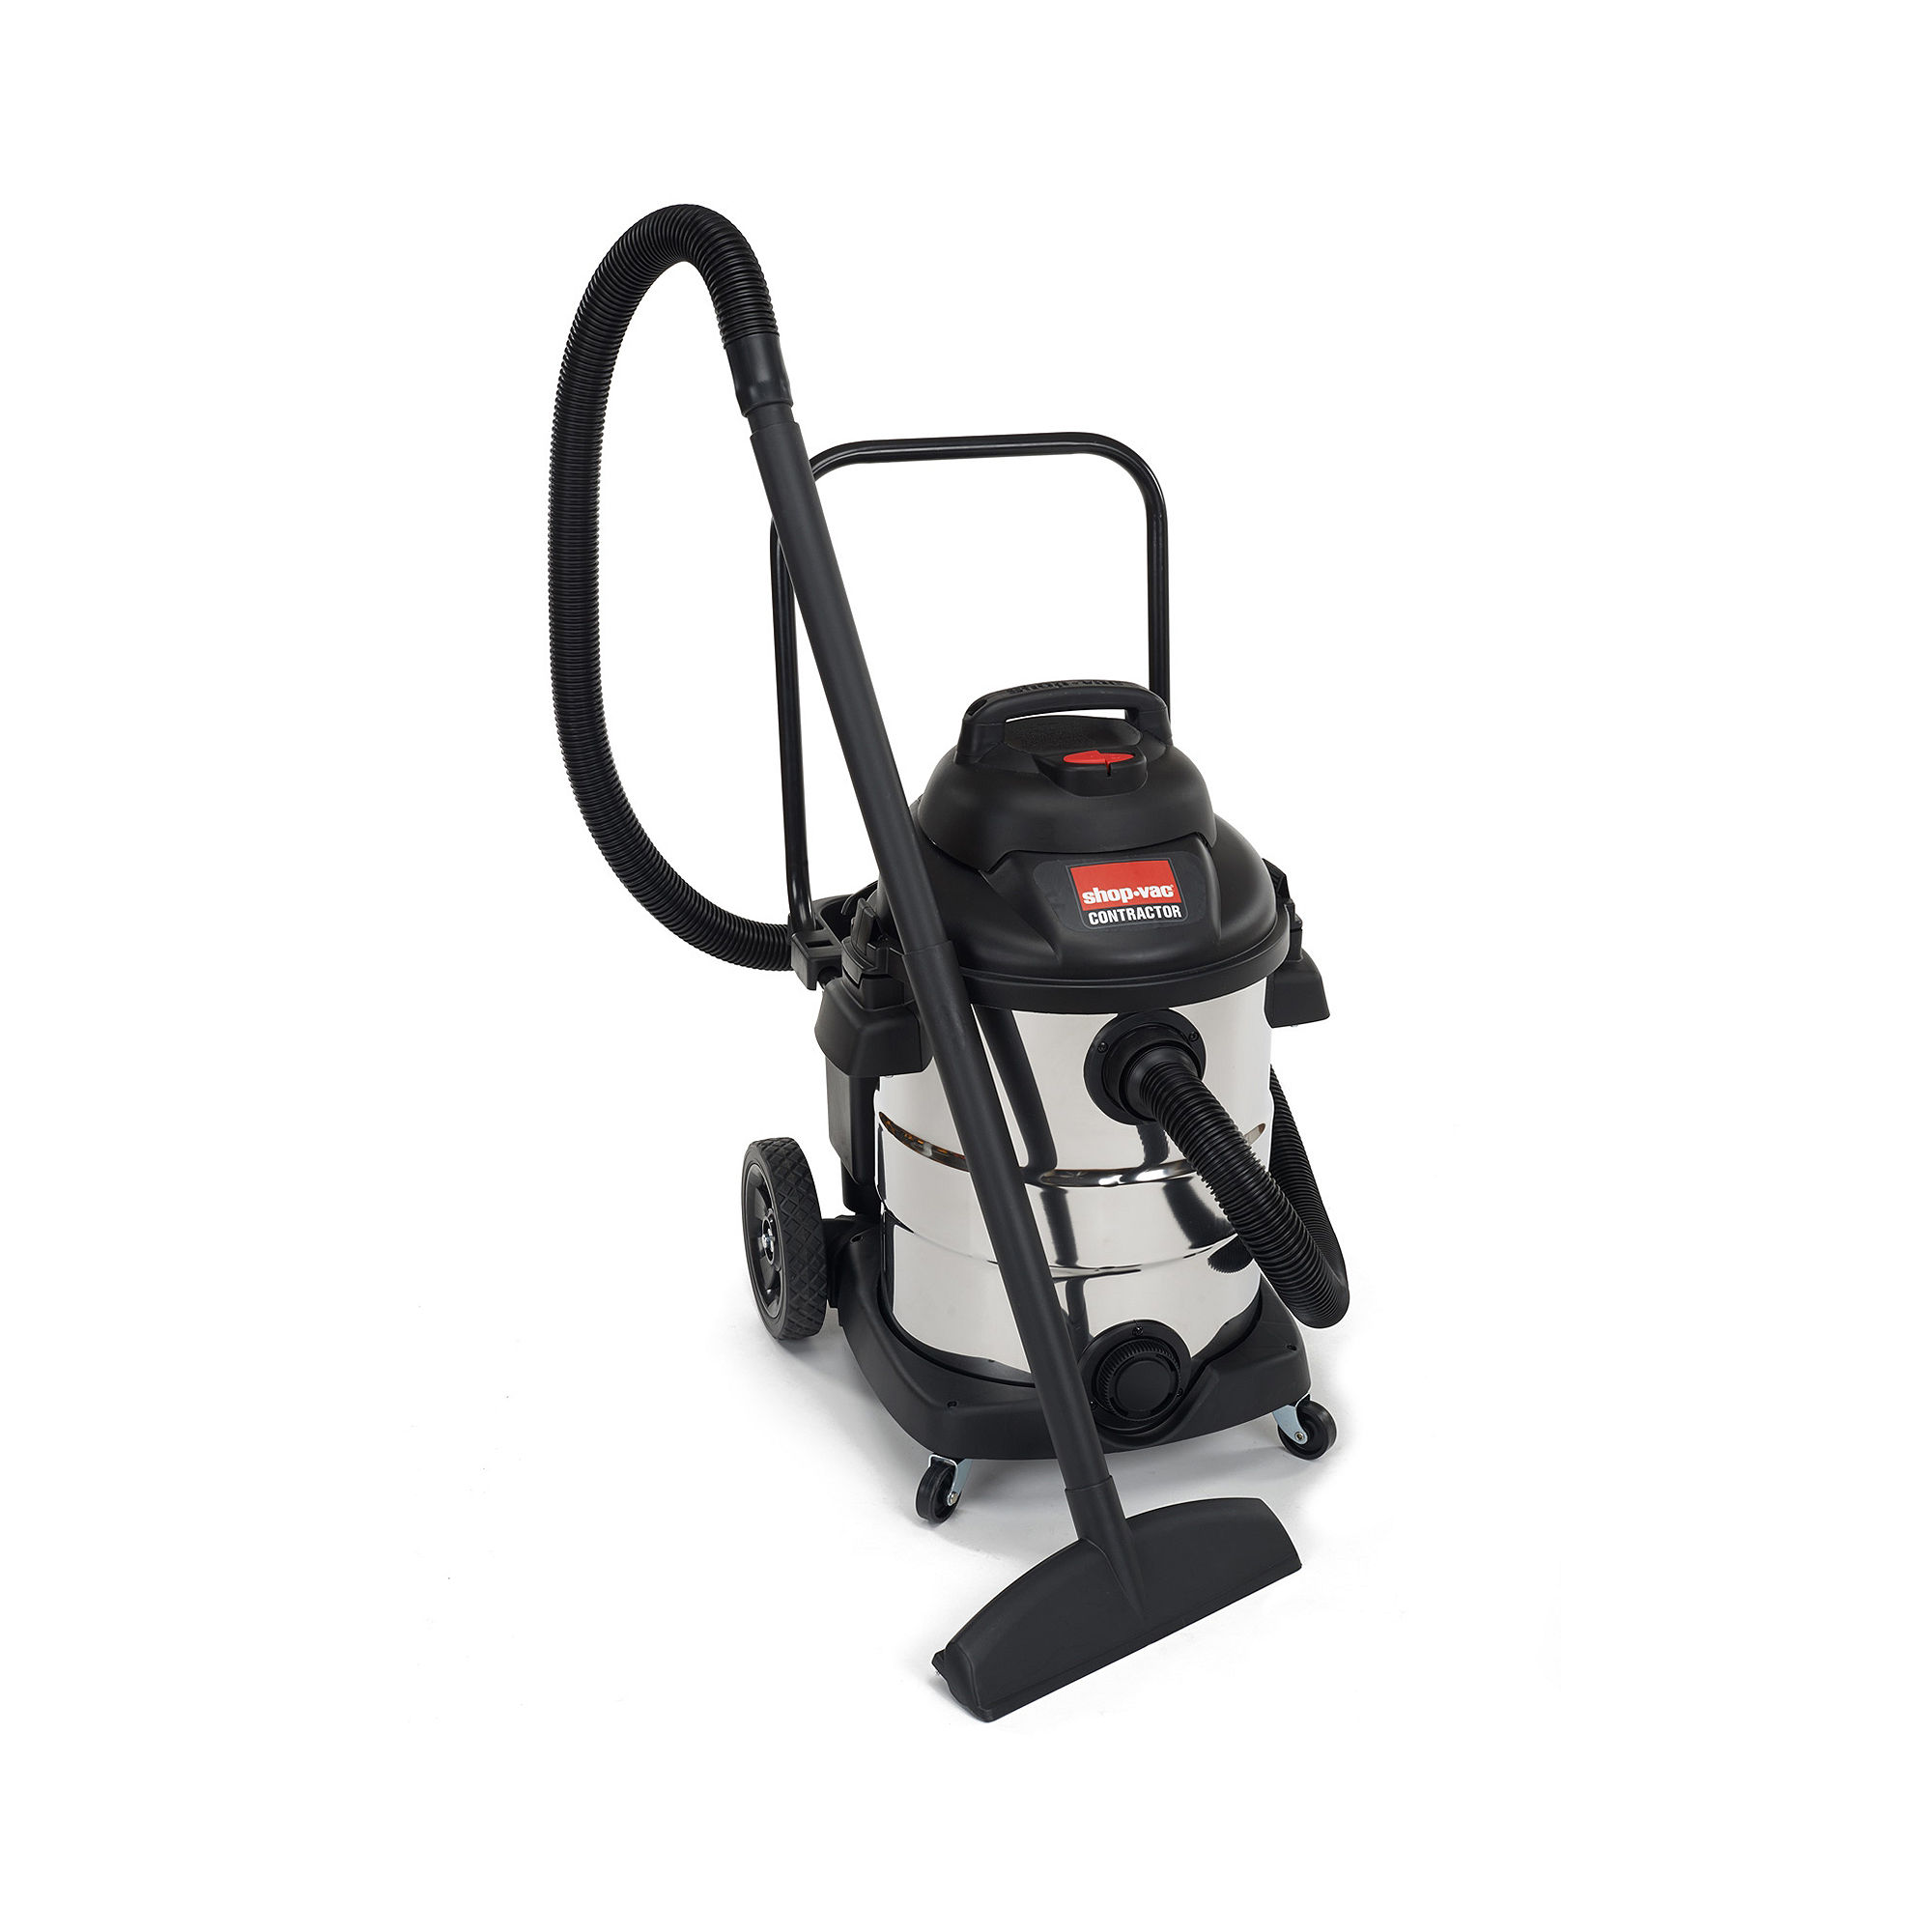 Shop-Vac Right Stuff 10-Gallon Wet/Dry Vacuum Cleaner